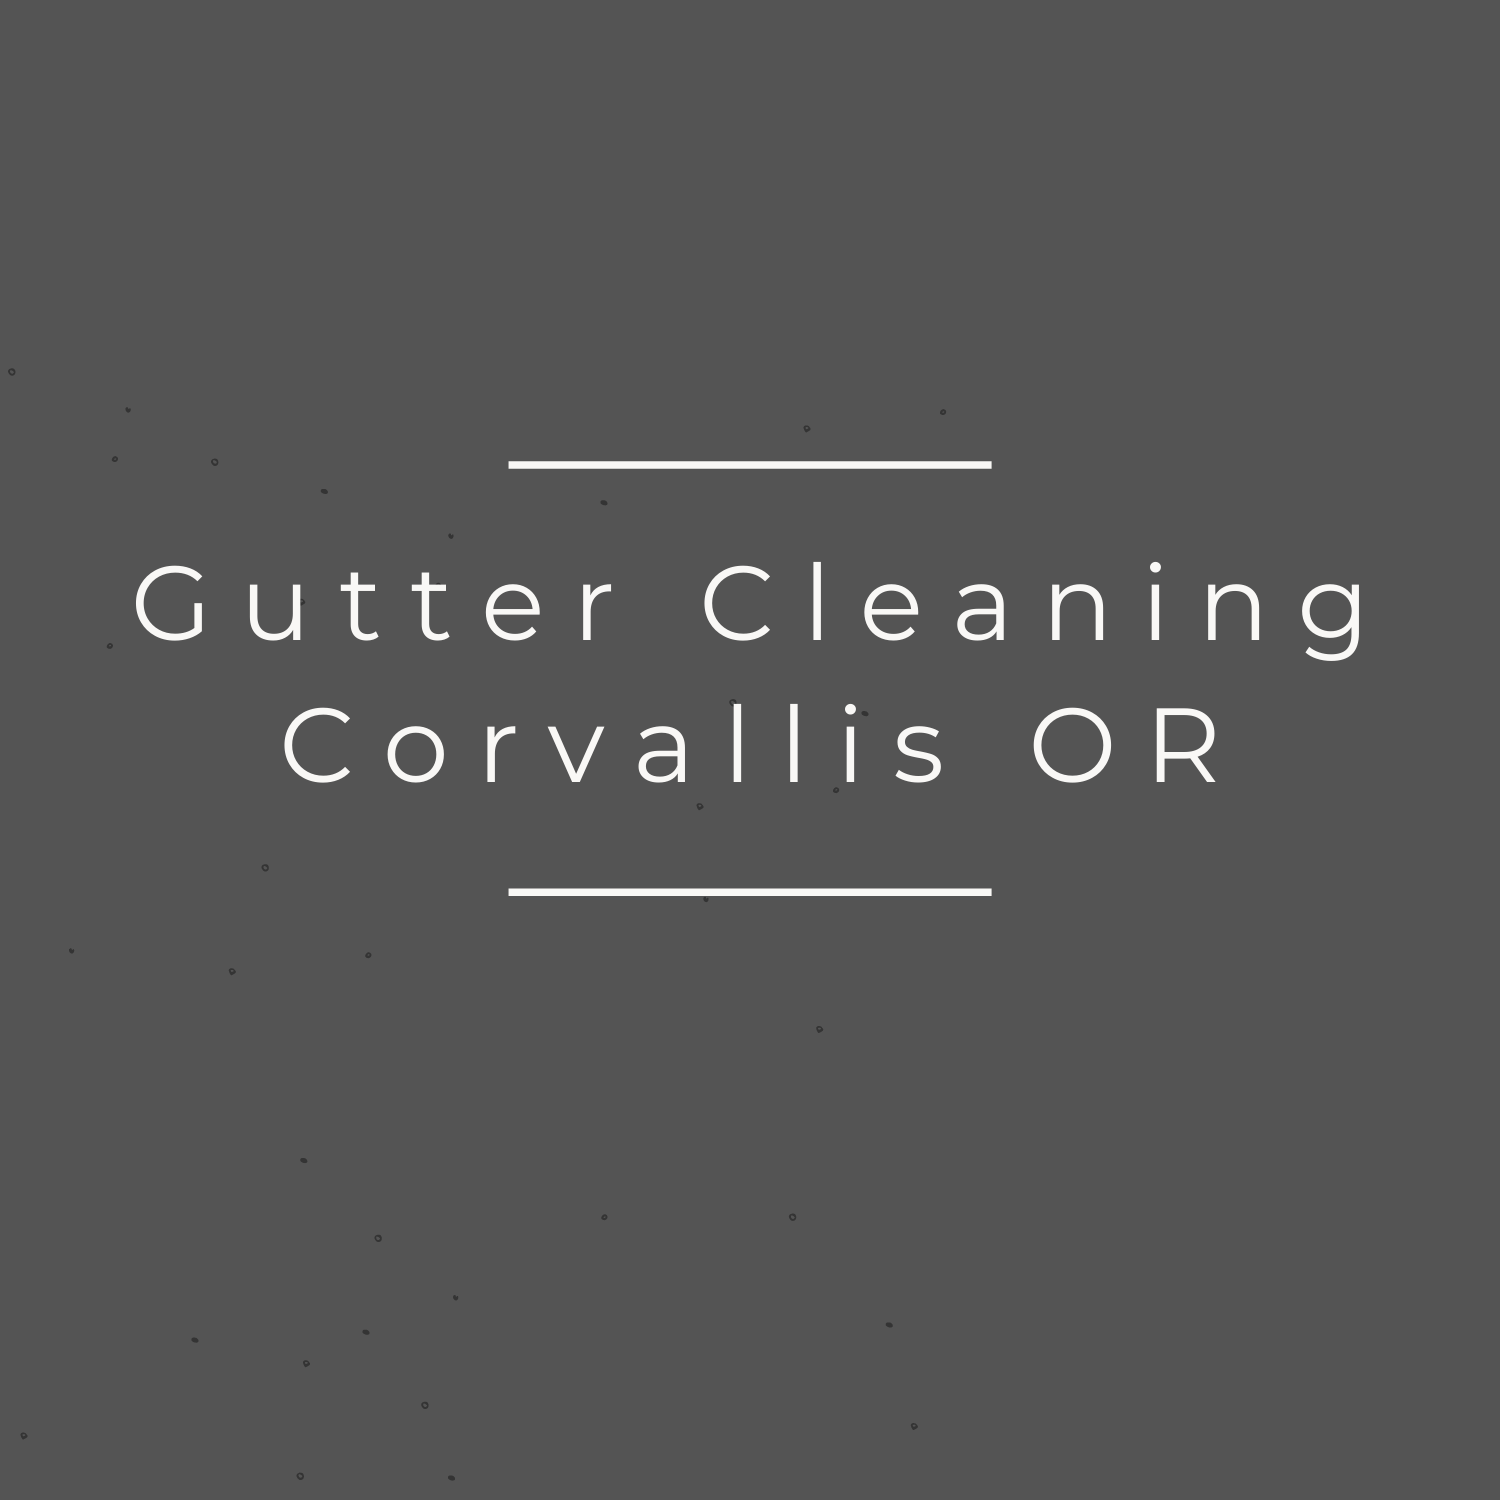 Gutter Cleaning Corvallis OR